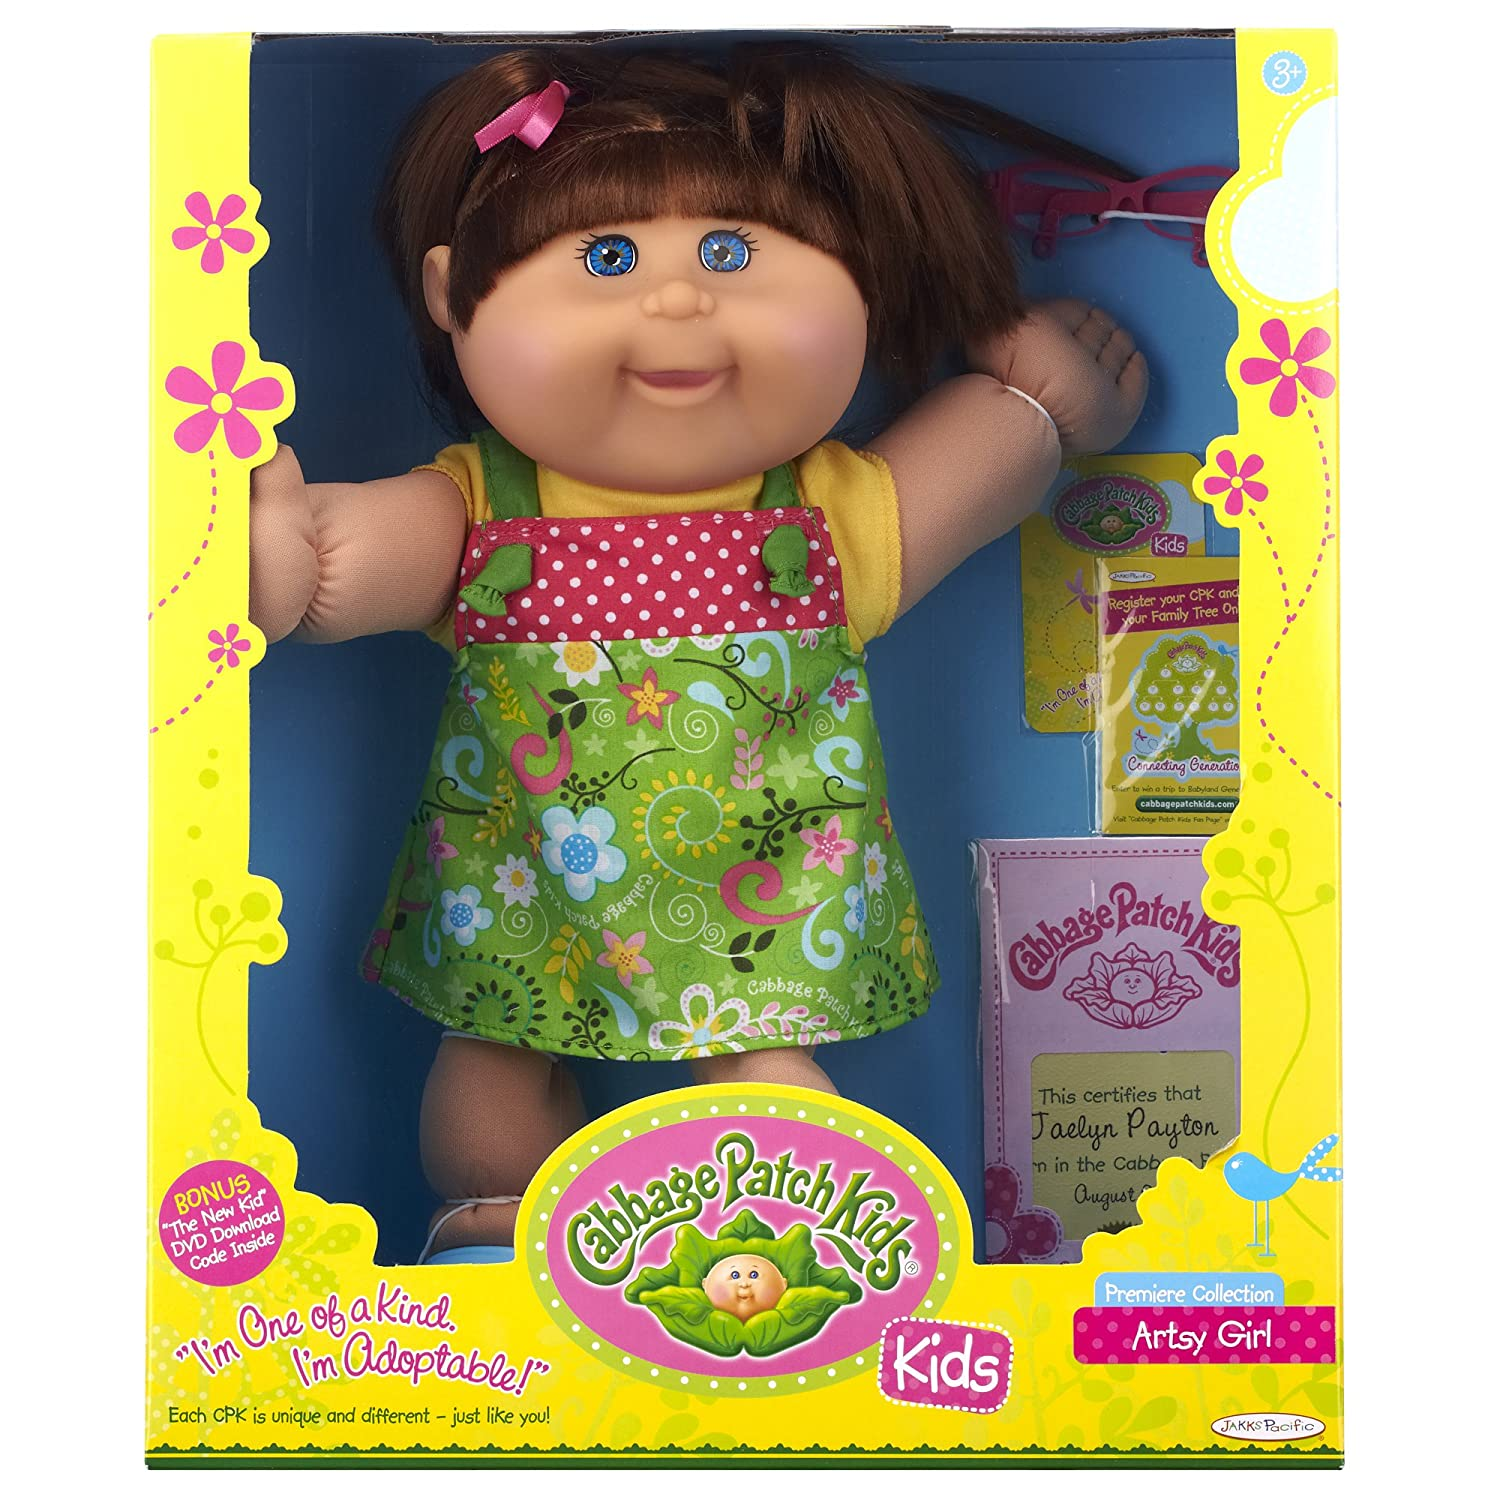 Cabbage Patch Kids Brunette Artsy Girl Amazon Toys & Games